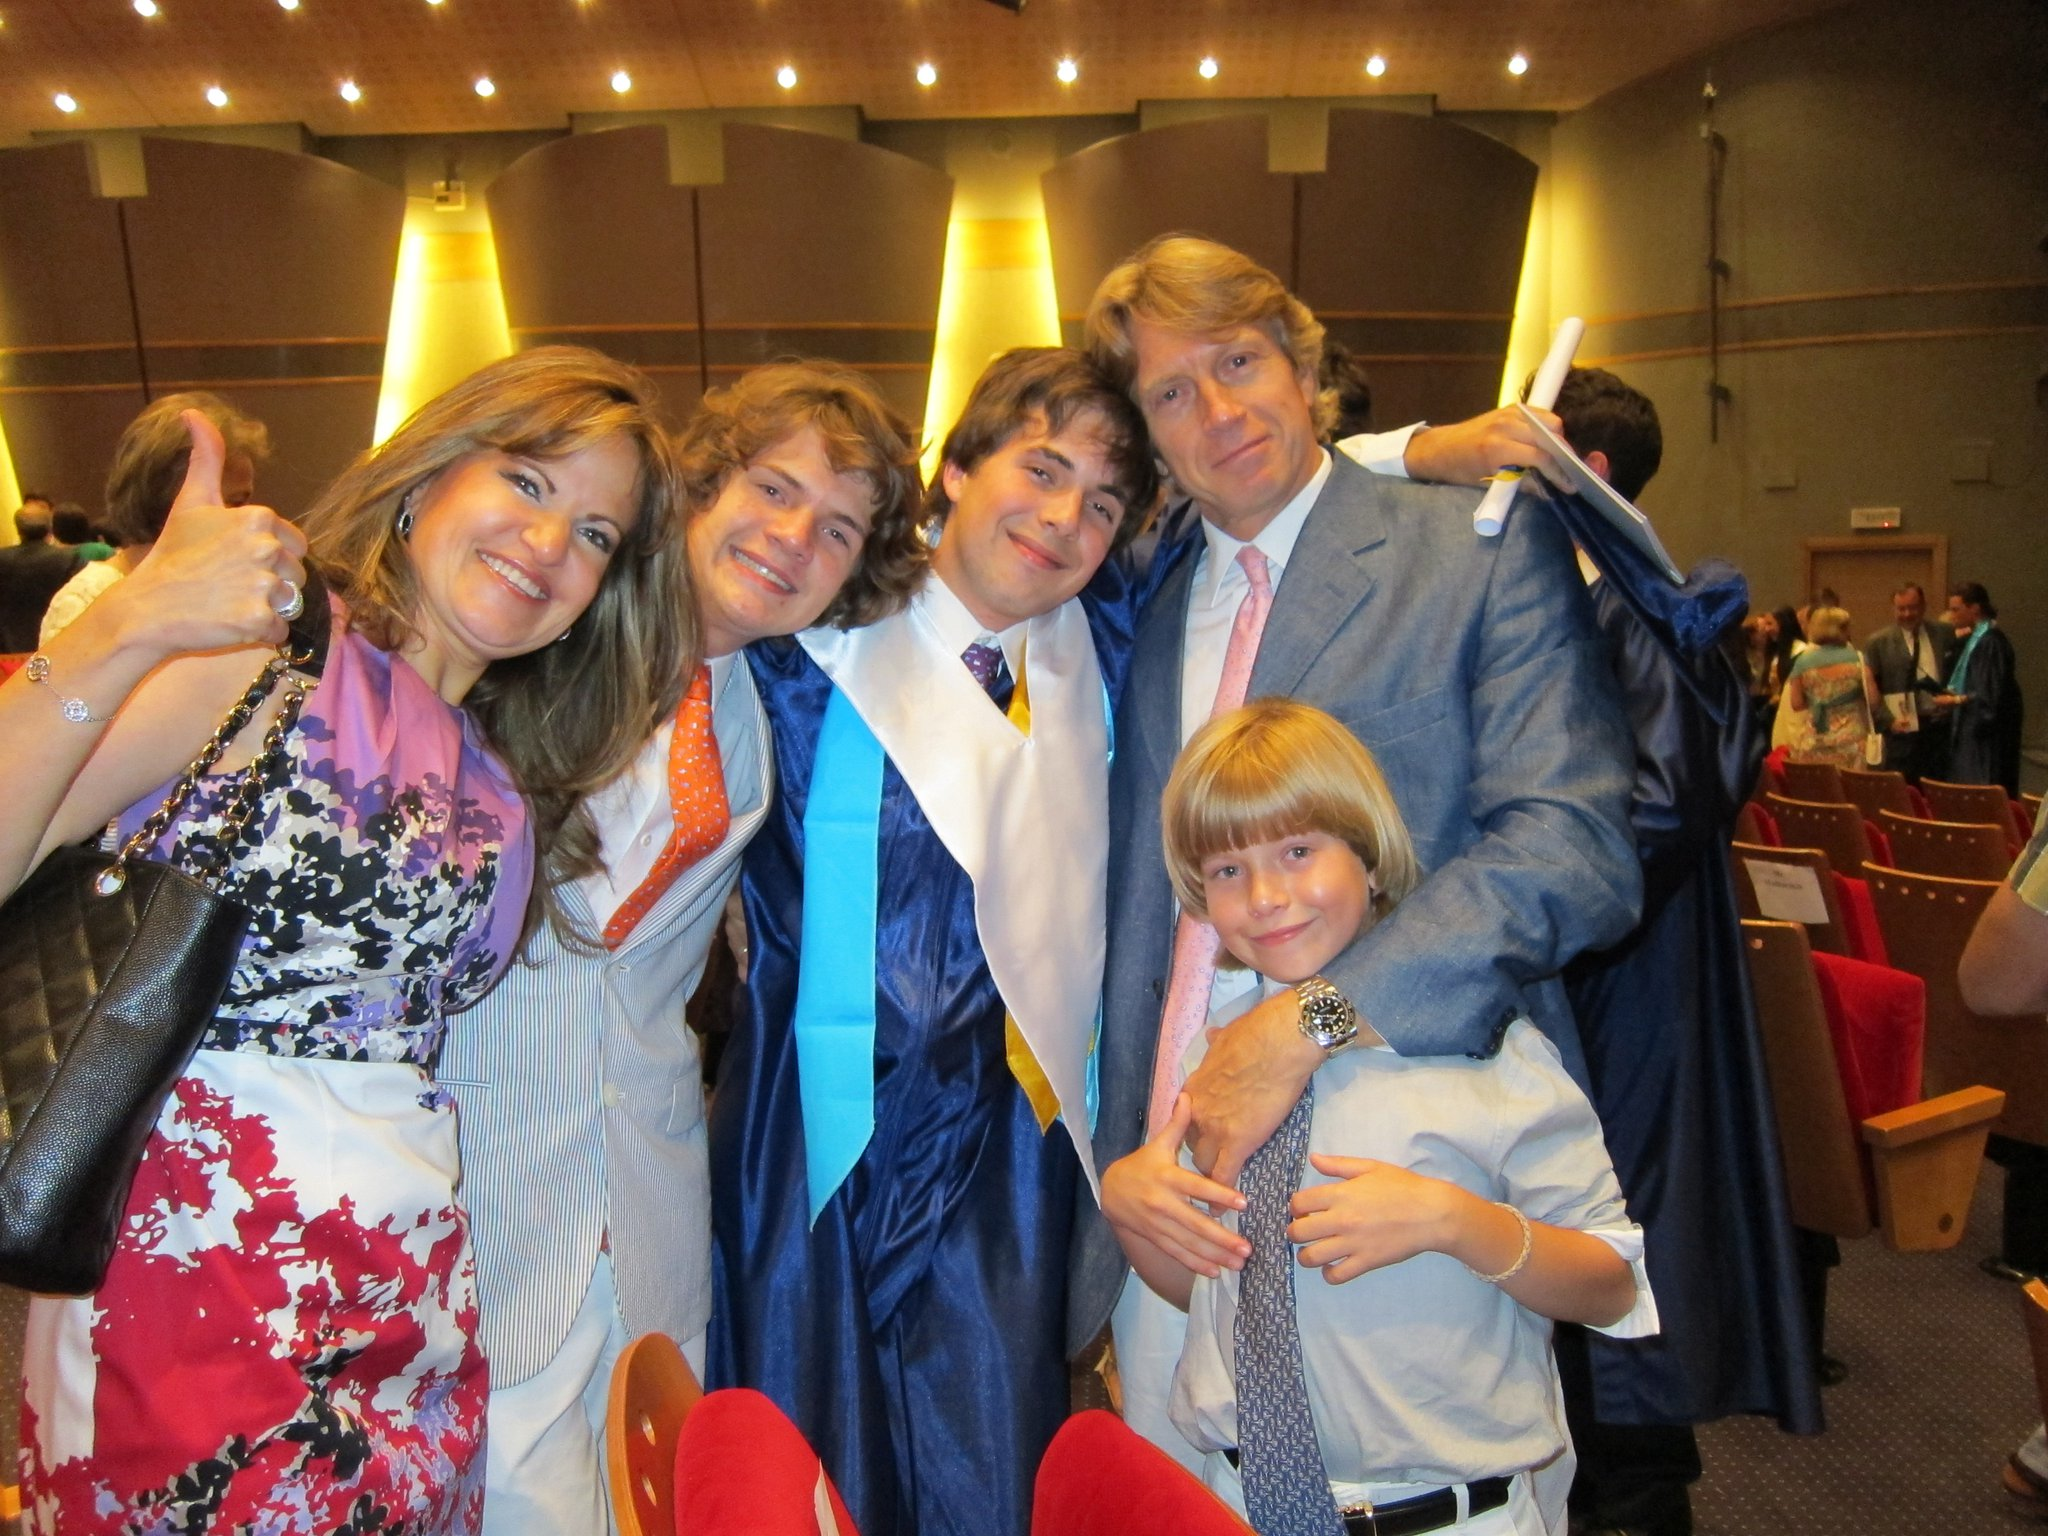 At my ACS graduation with family: alumni of the past, present, and future